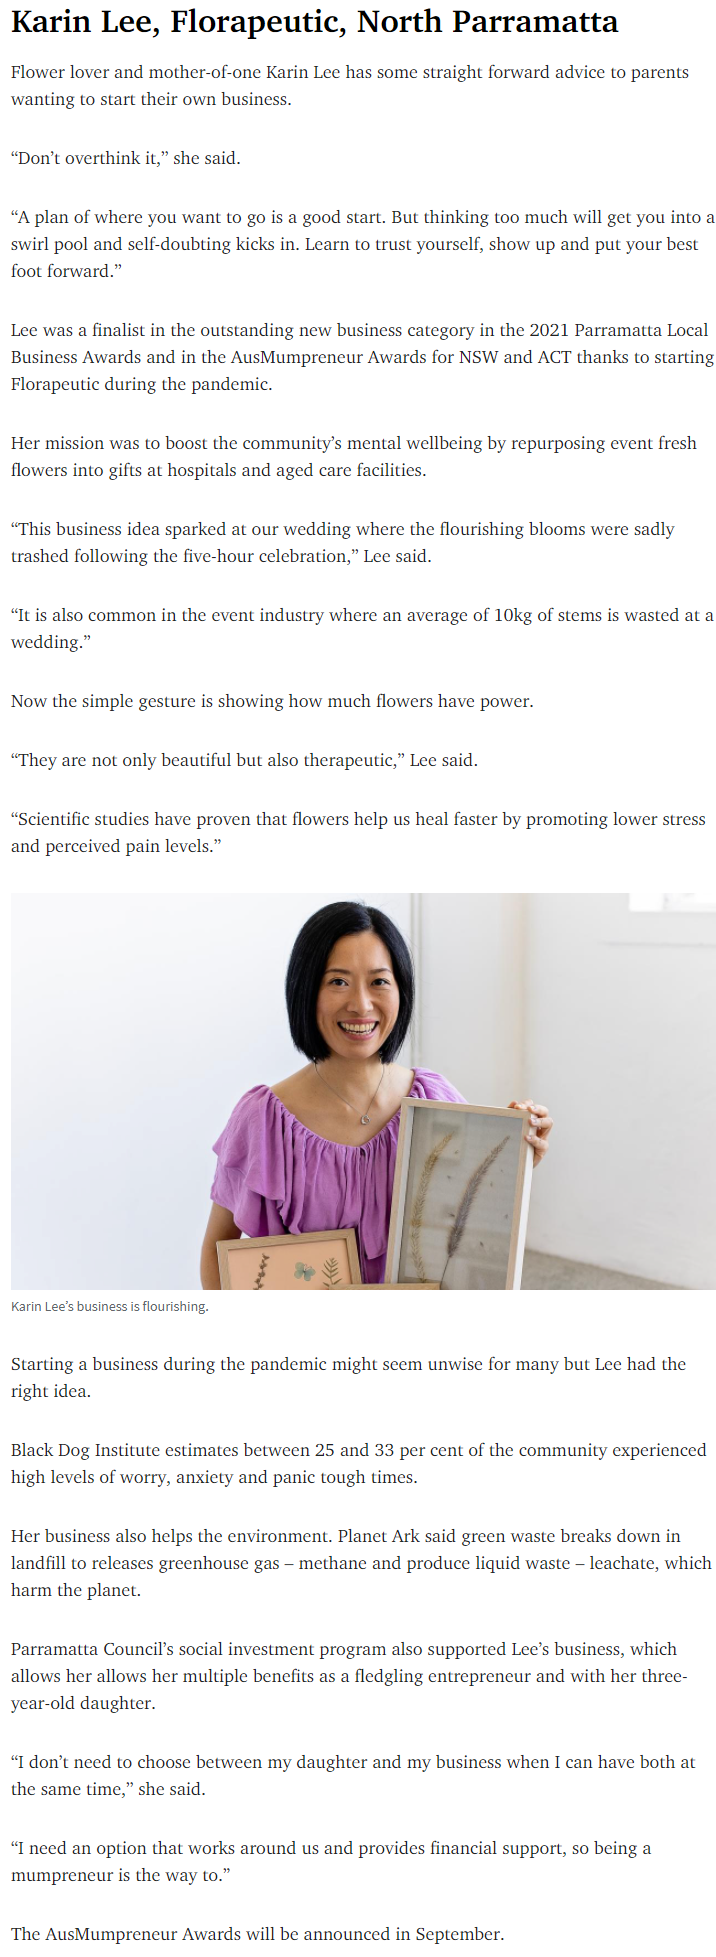 Karin and Florapeutic were featured in Daily Telegraph Newslocal Parramatta advising parents who want to start their own business.